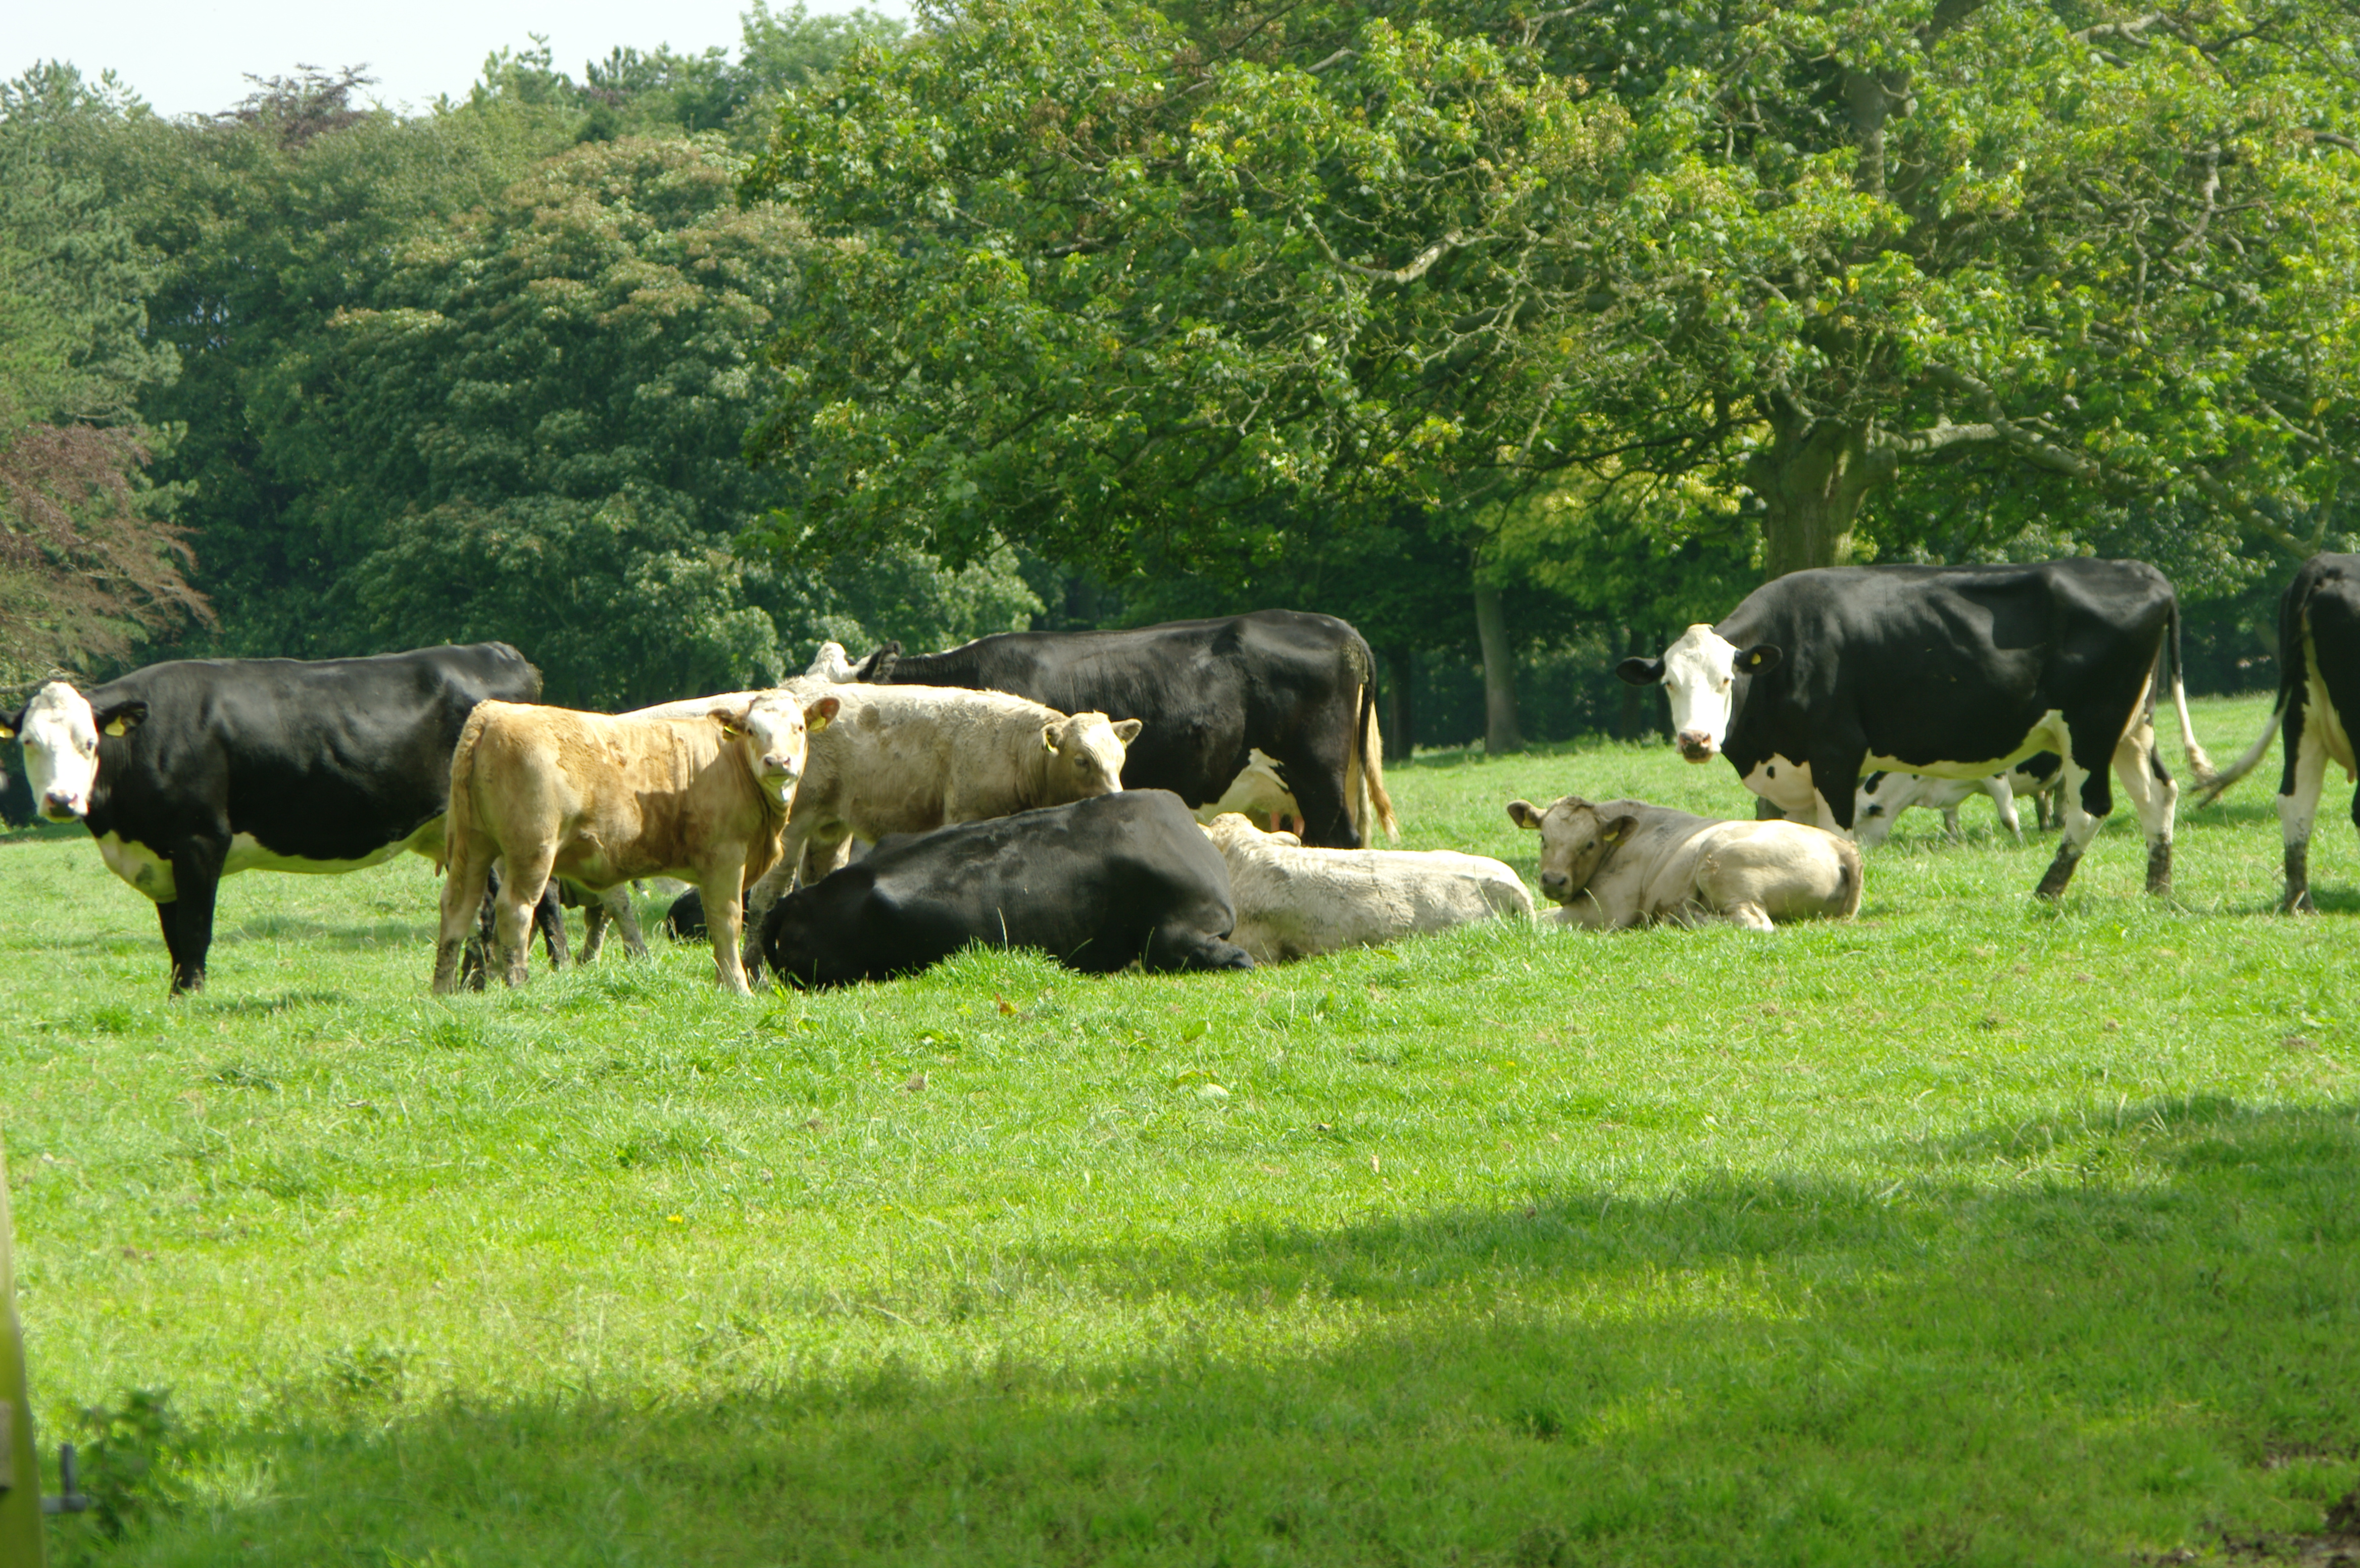 Cattle at grass